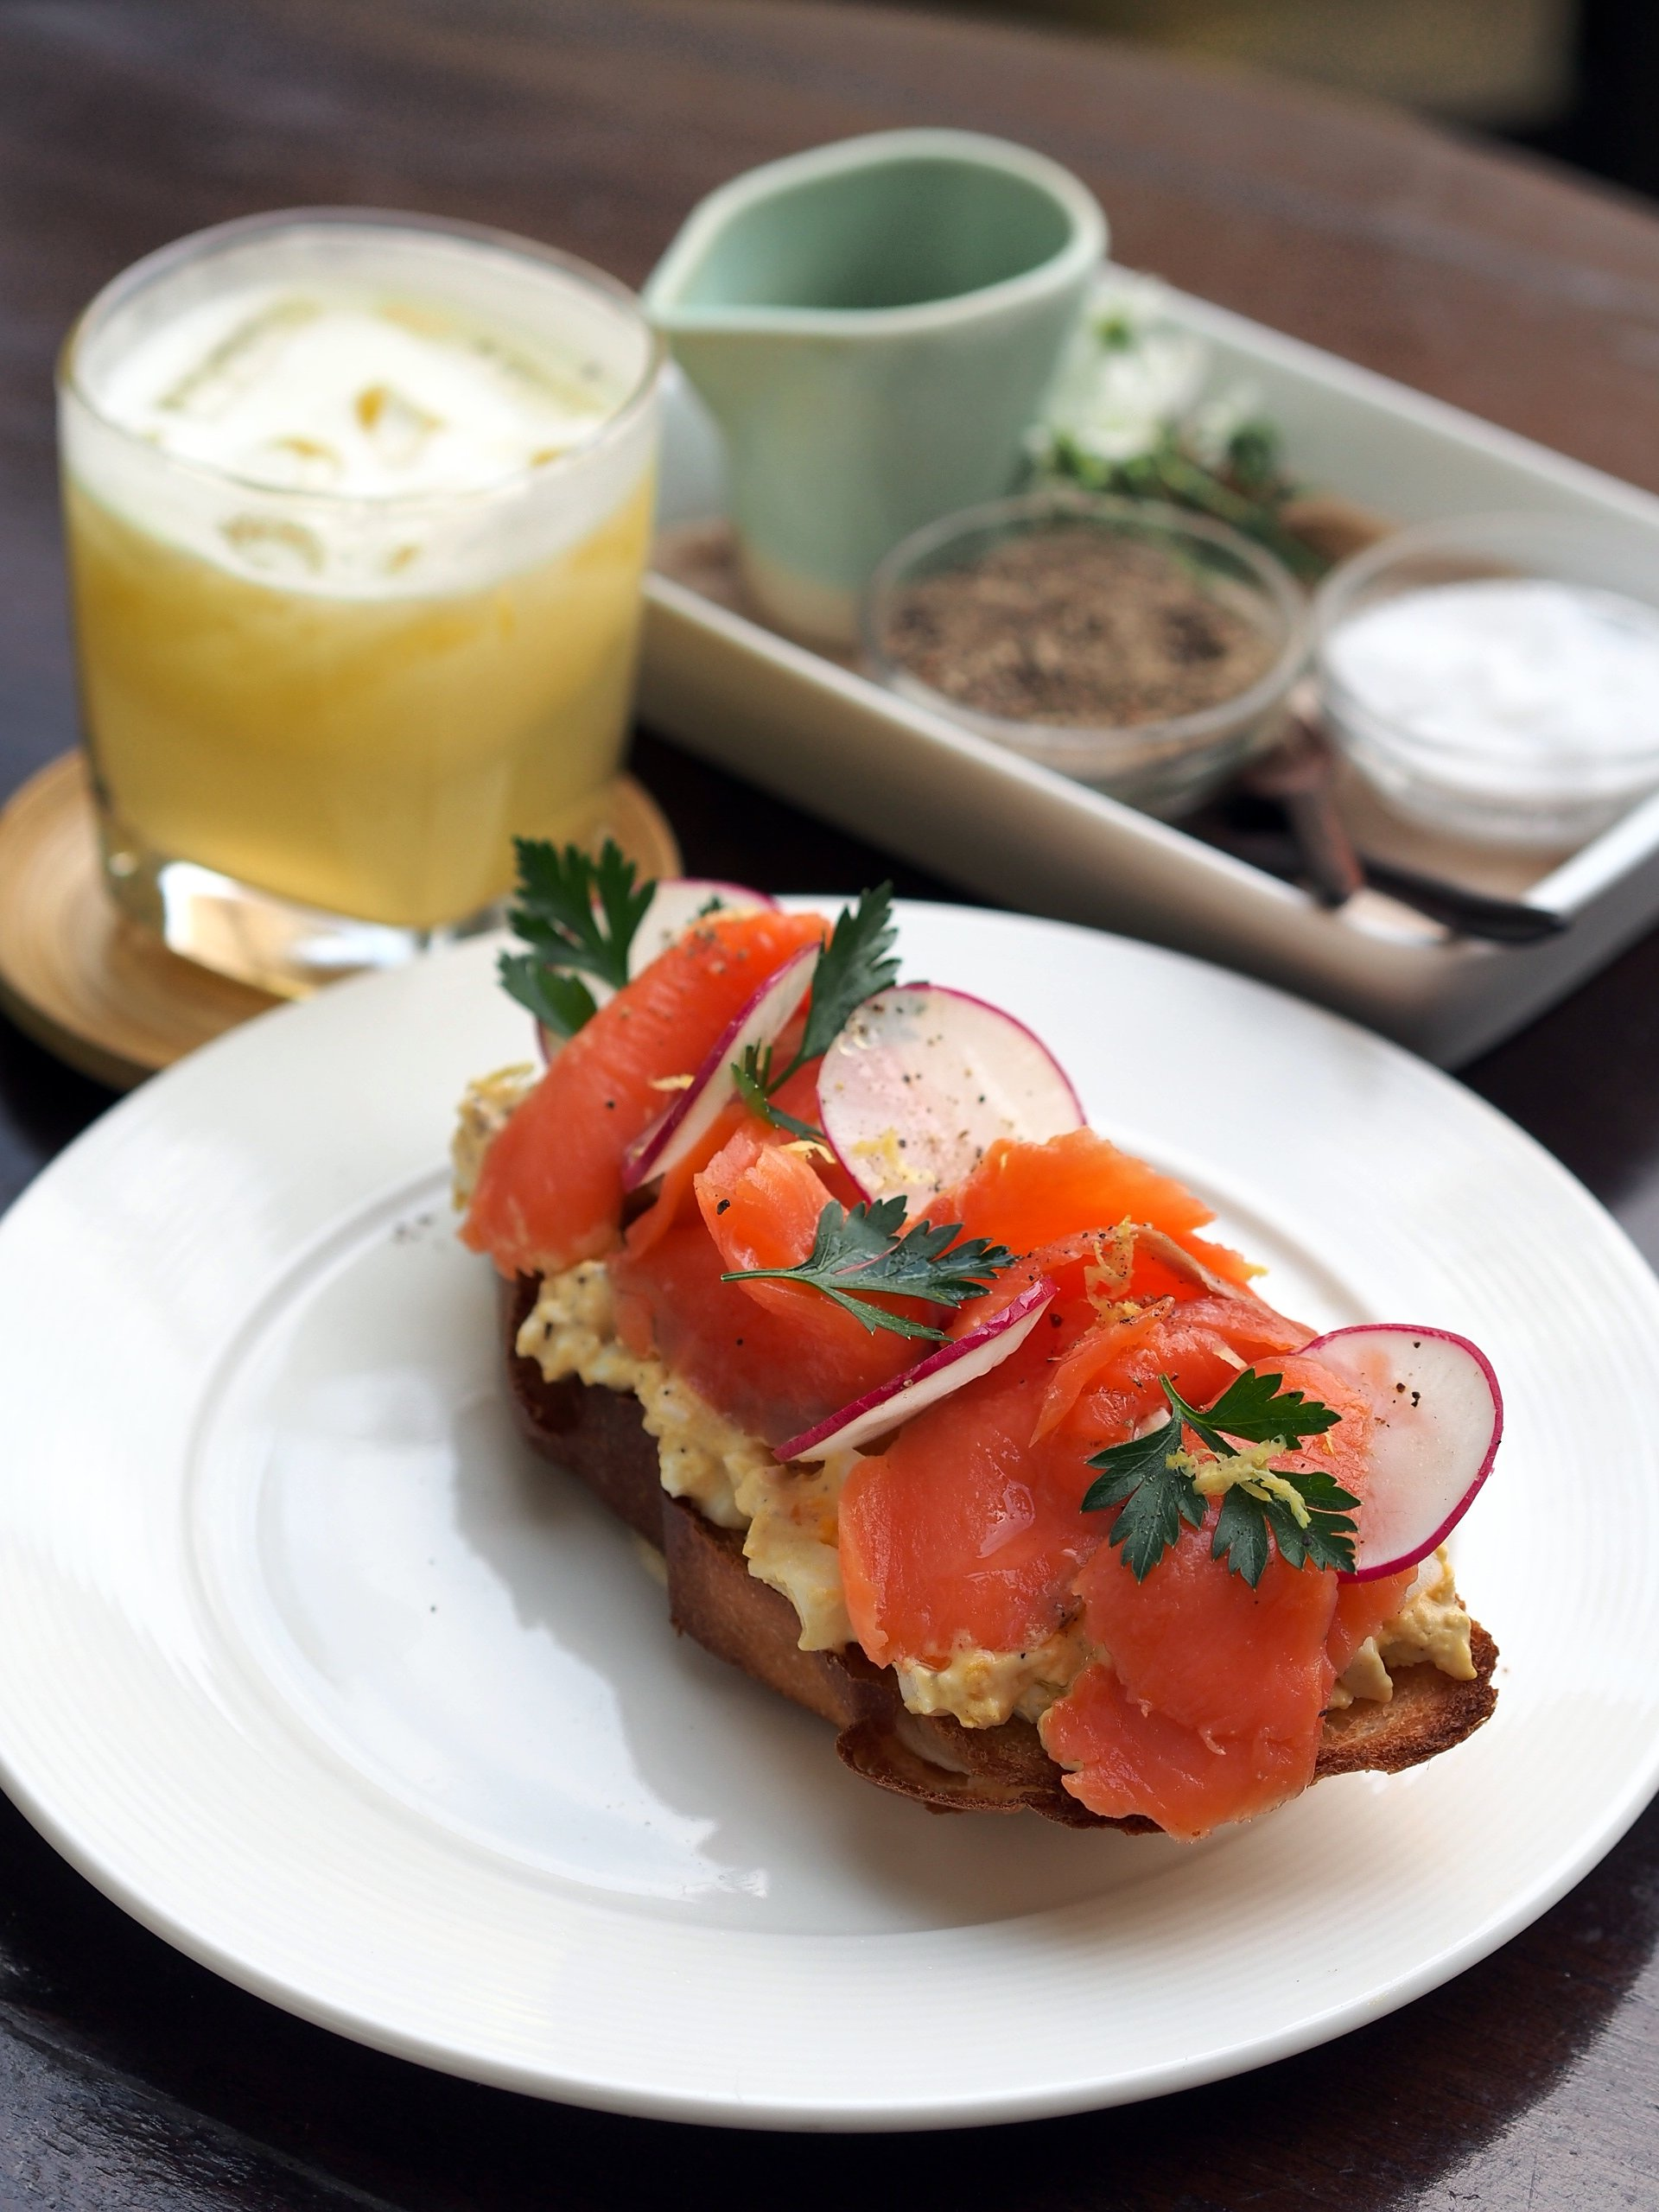 File:2014 smoked salmon and egg salad toasted baguette.JPG - Wikimedia ...